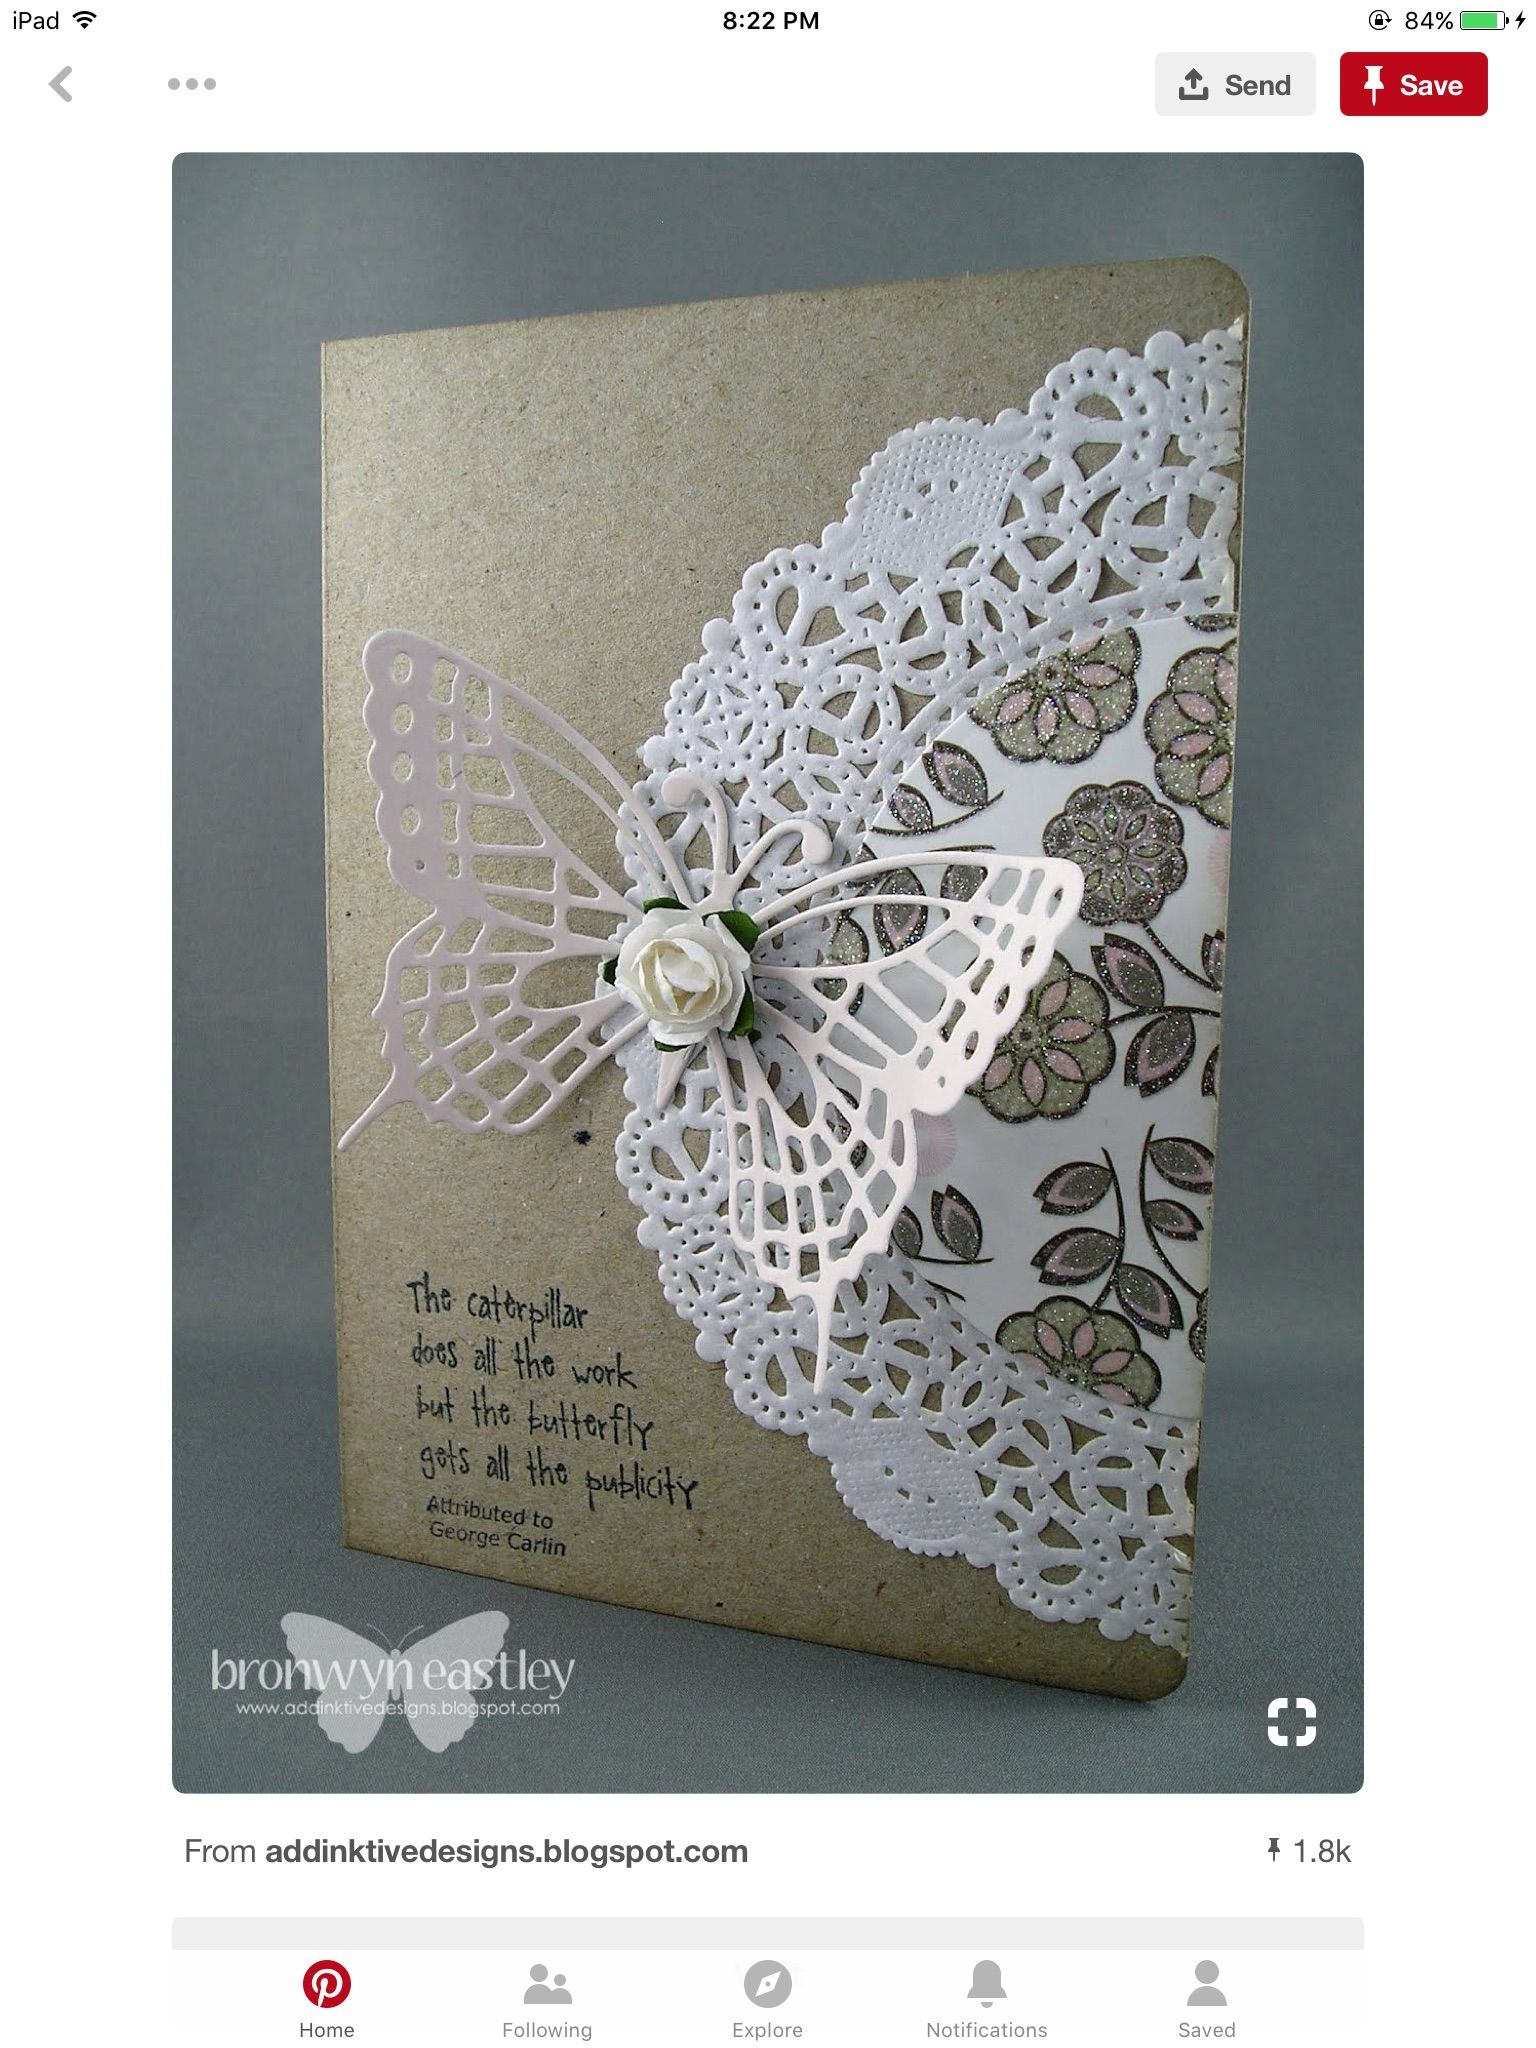 Pin by angela hoskins on cards pinterest card ideas cards and